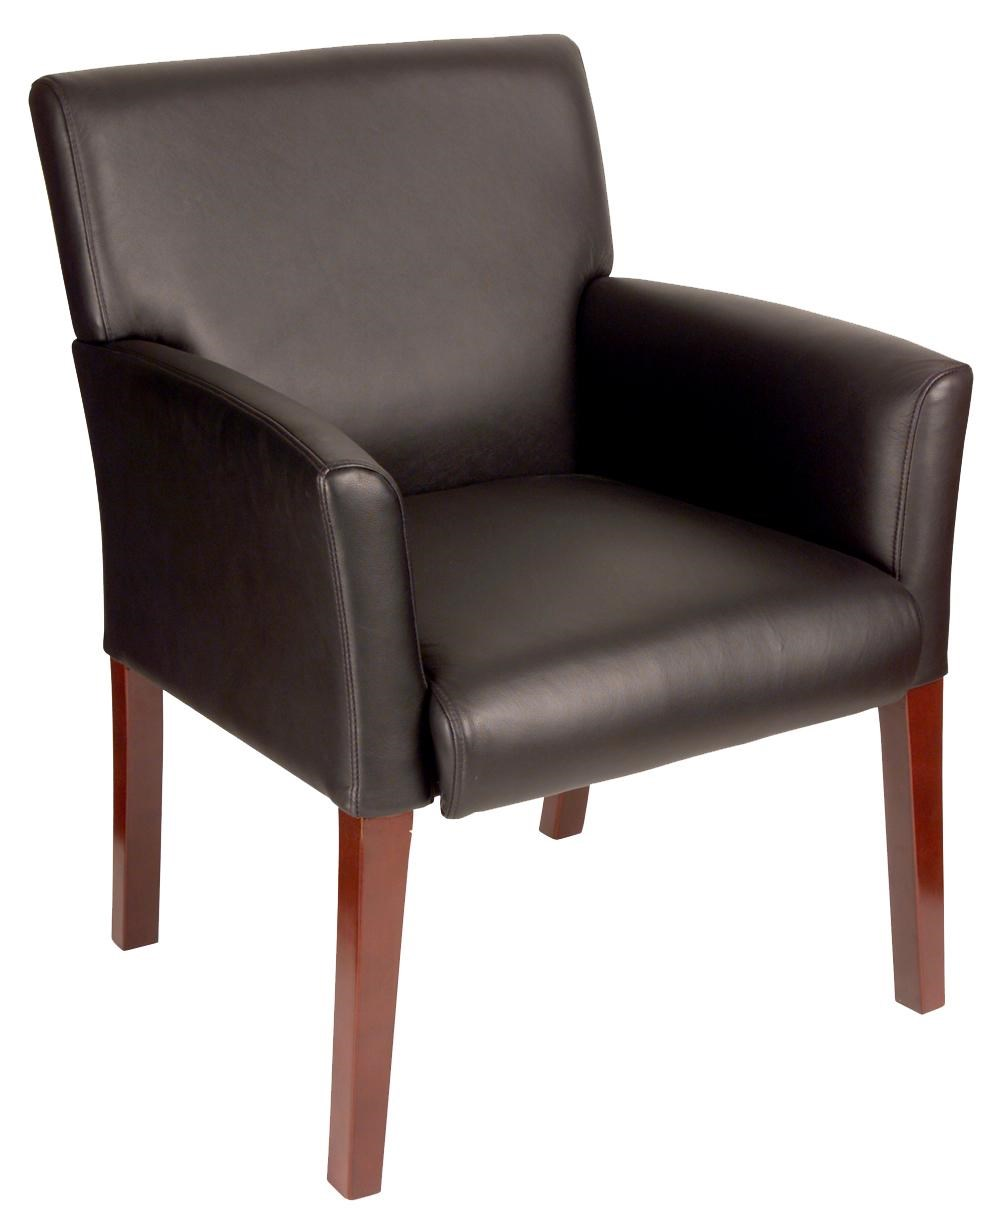 Presidential Seating Office Side Chairs Contemporary Office Urban Guest Chair | Boulevard Home Furnishings | Office Side Chairs  sc 1 st  Boulevard Home Furnishings & Presidential Seating Office Side Chairs Contemporary Office Urban ...